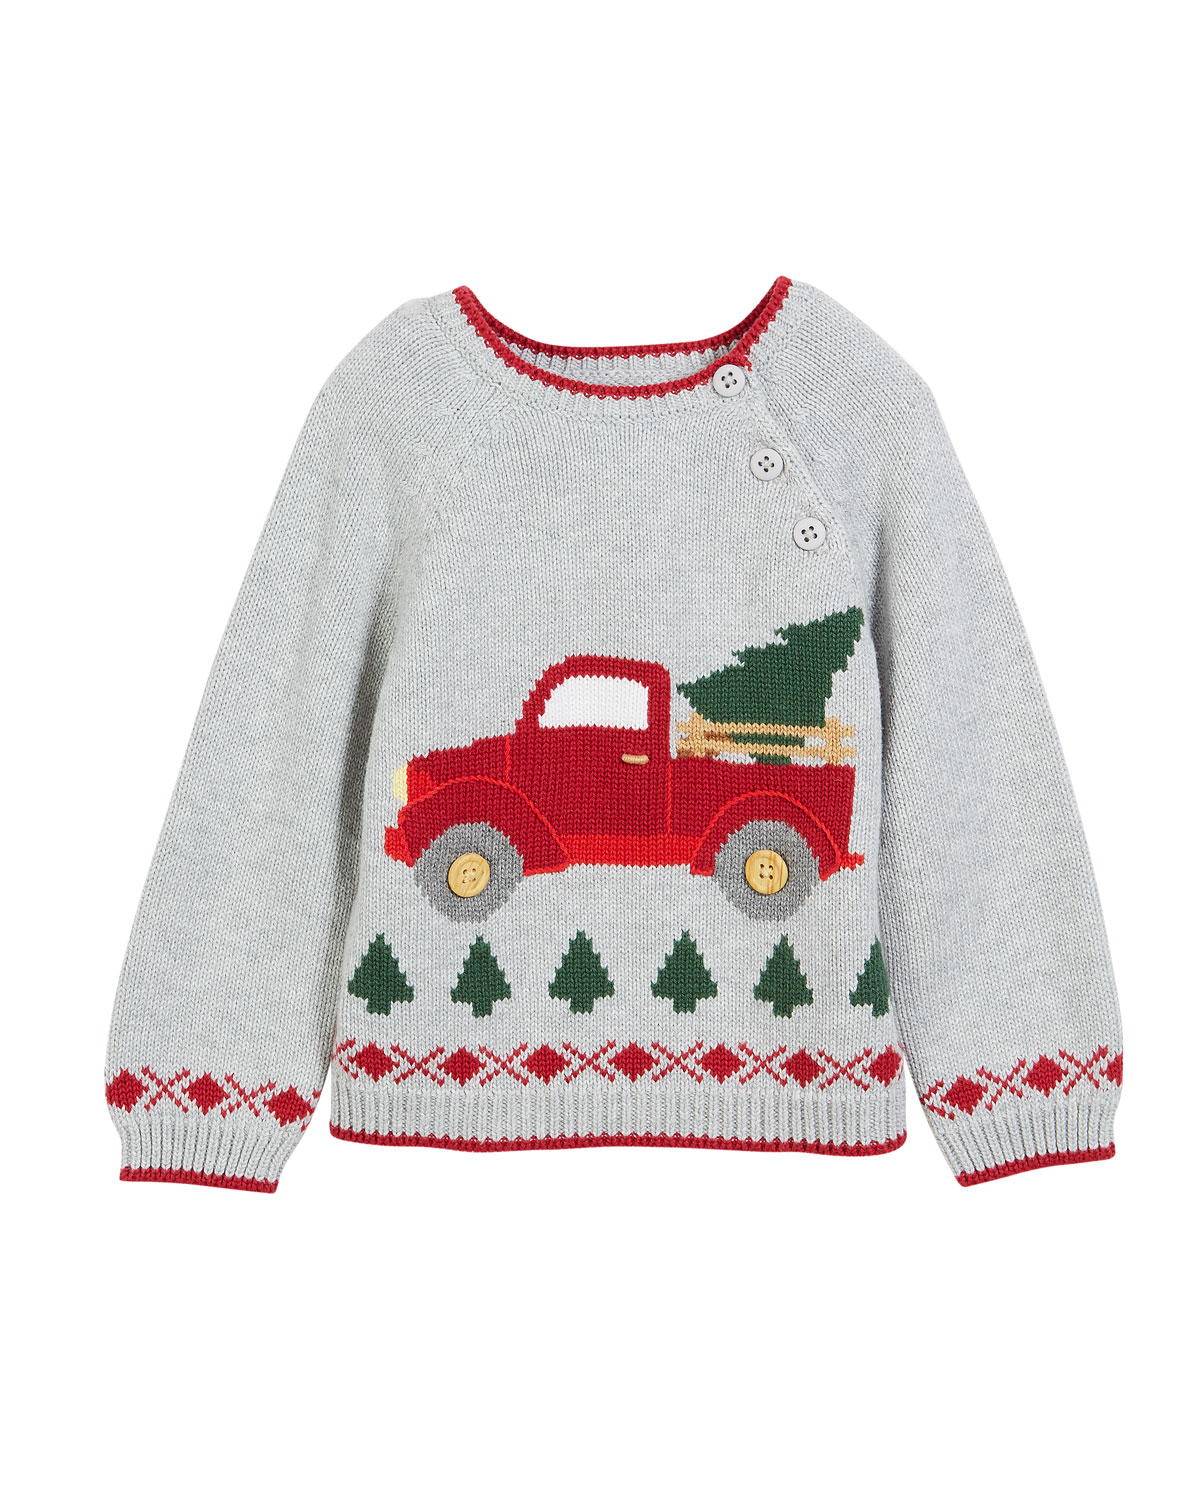 Zubels Kids\' Antique Truck Knit Christmas Sweater, Size 12M-7 ...